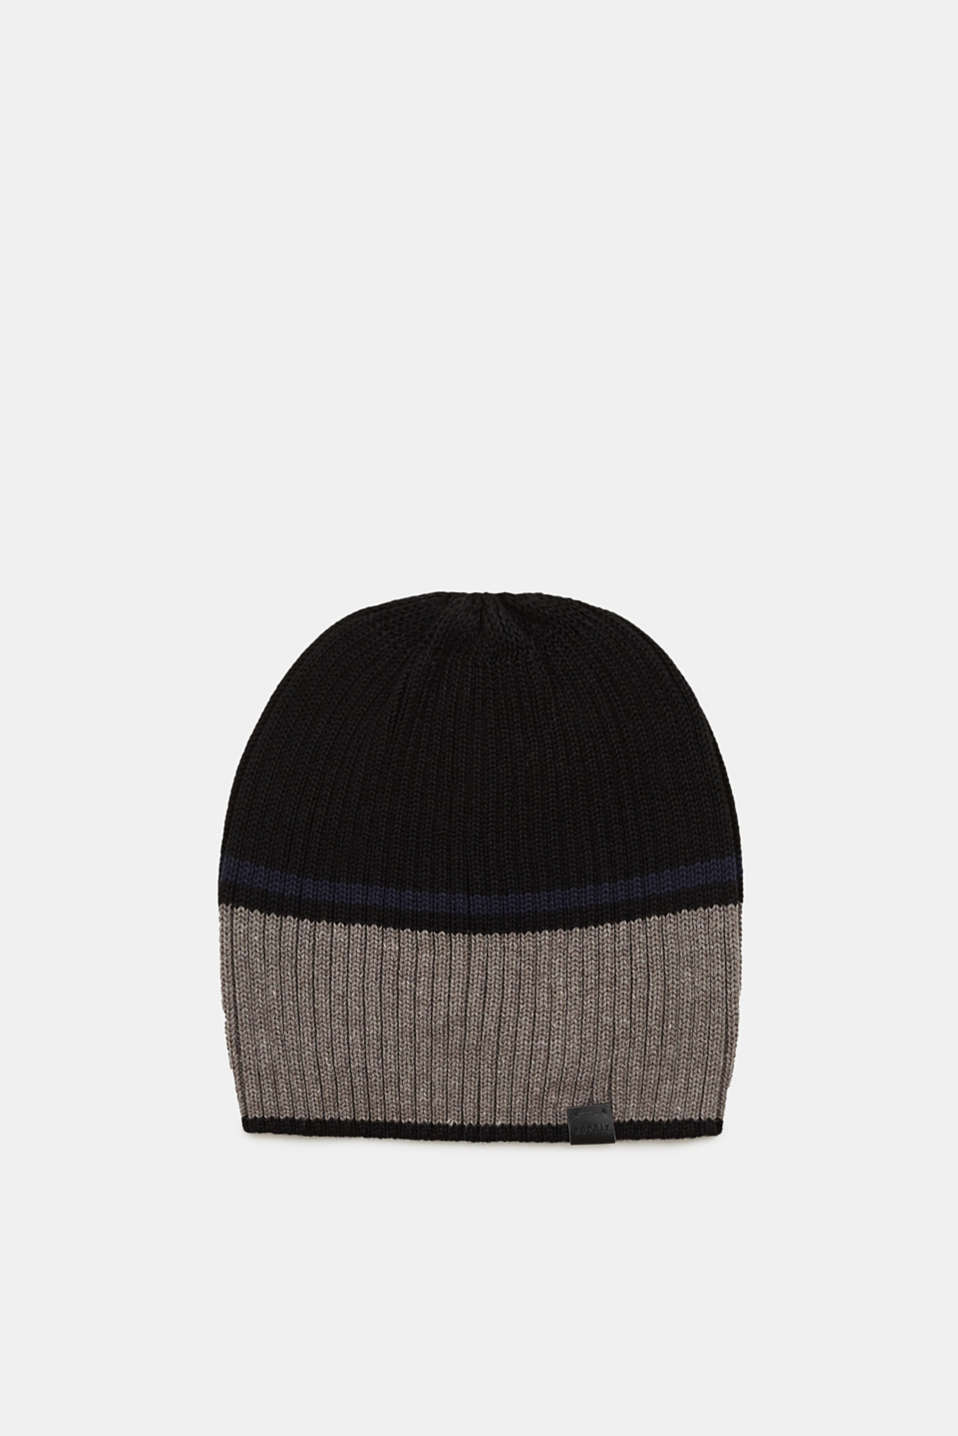 Esprit - Cap with block stripes, in blended cotton